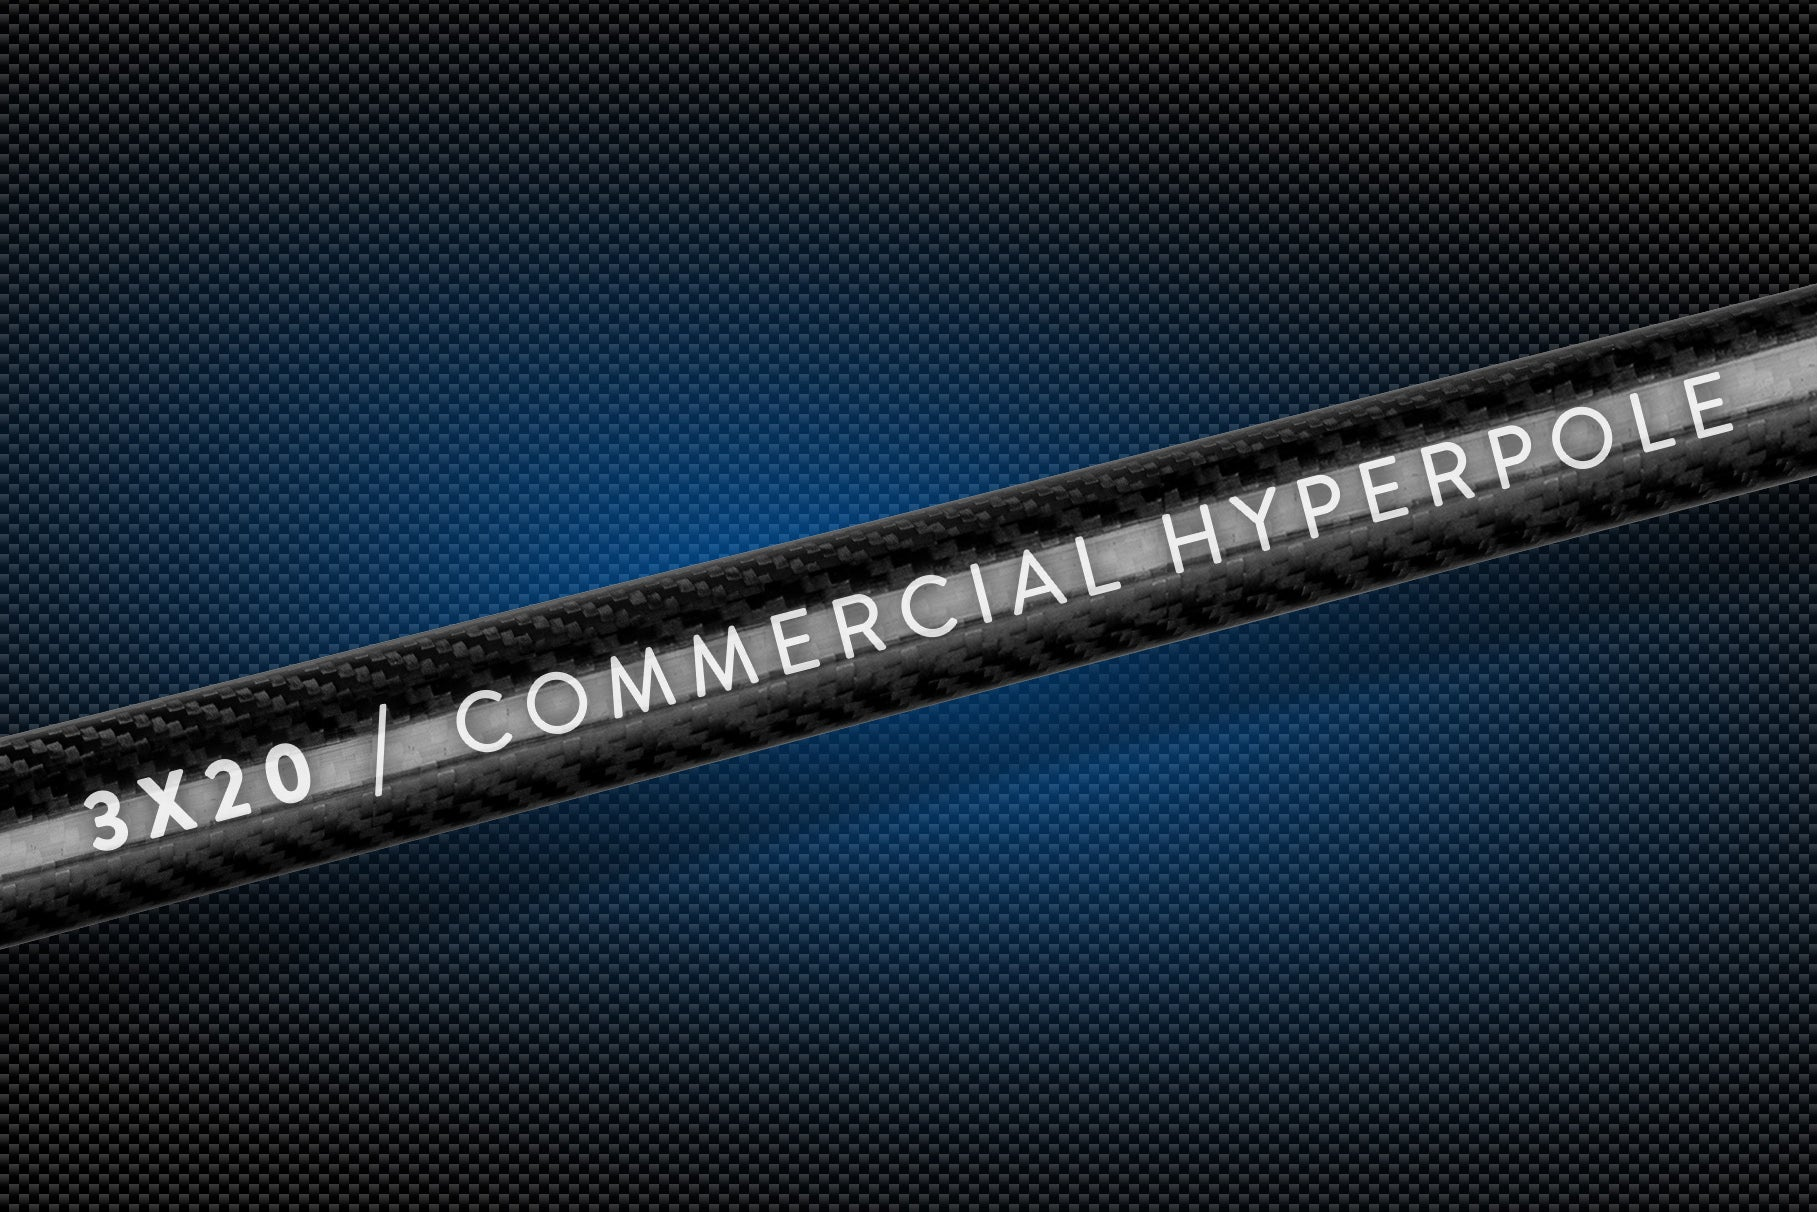 3X20 / Commercial Hyperpole - 20 ft.